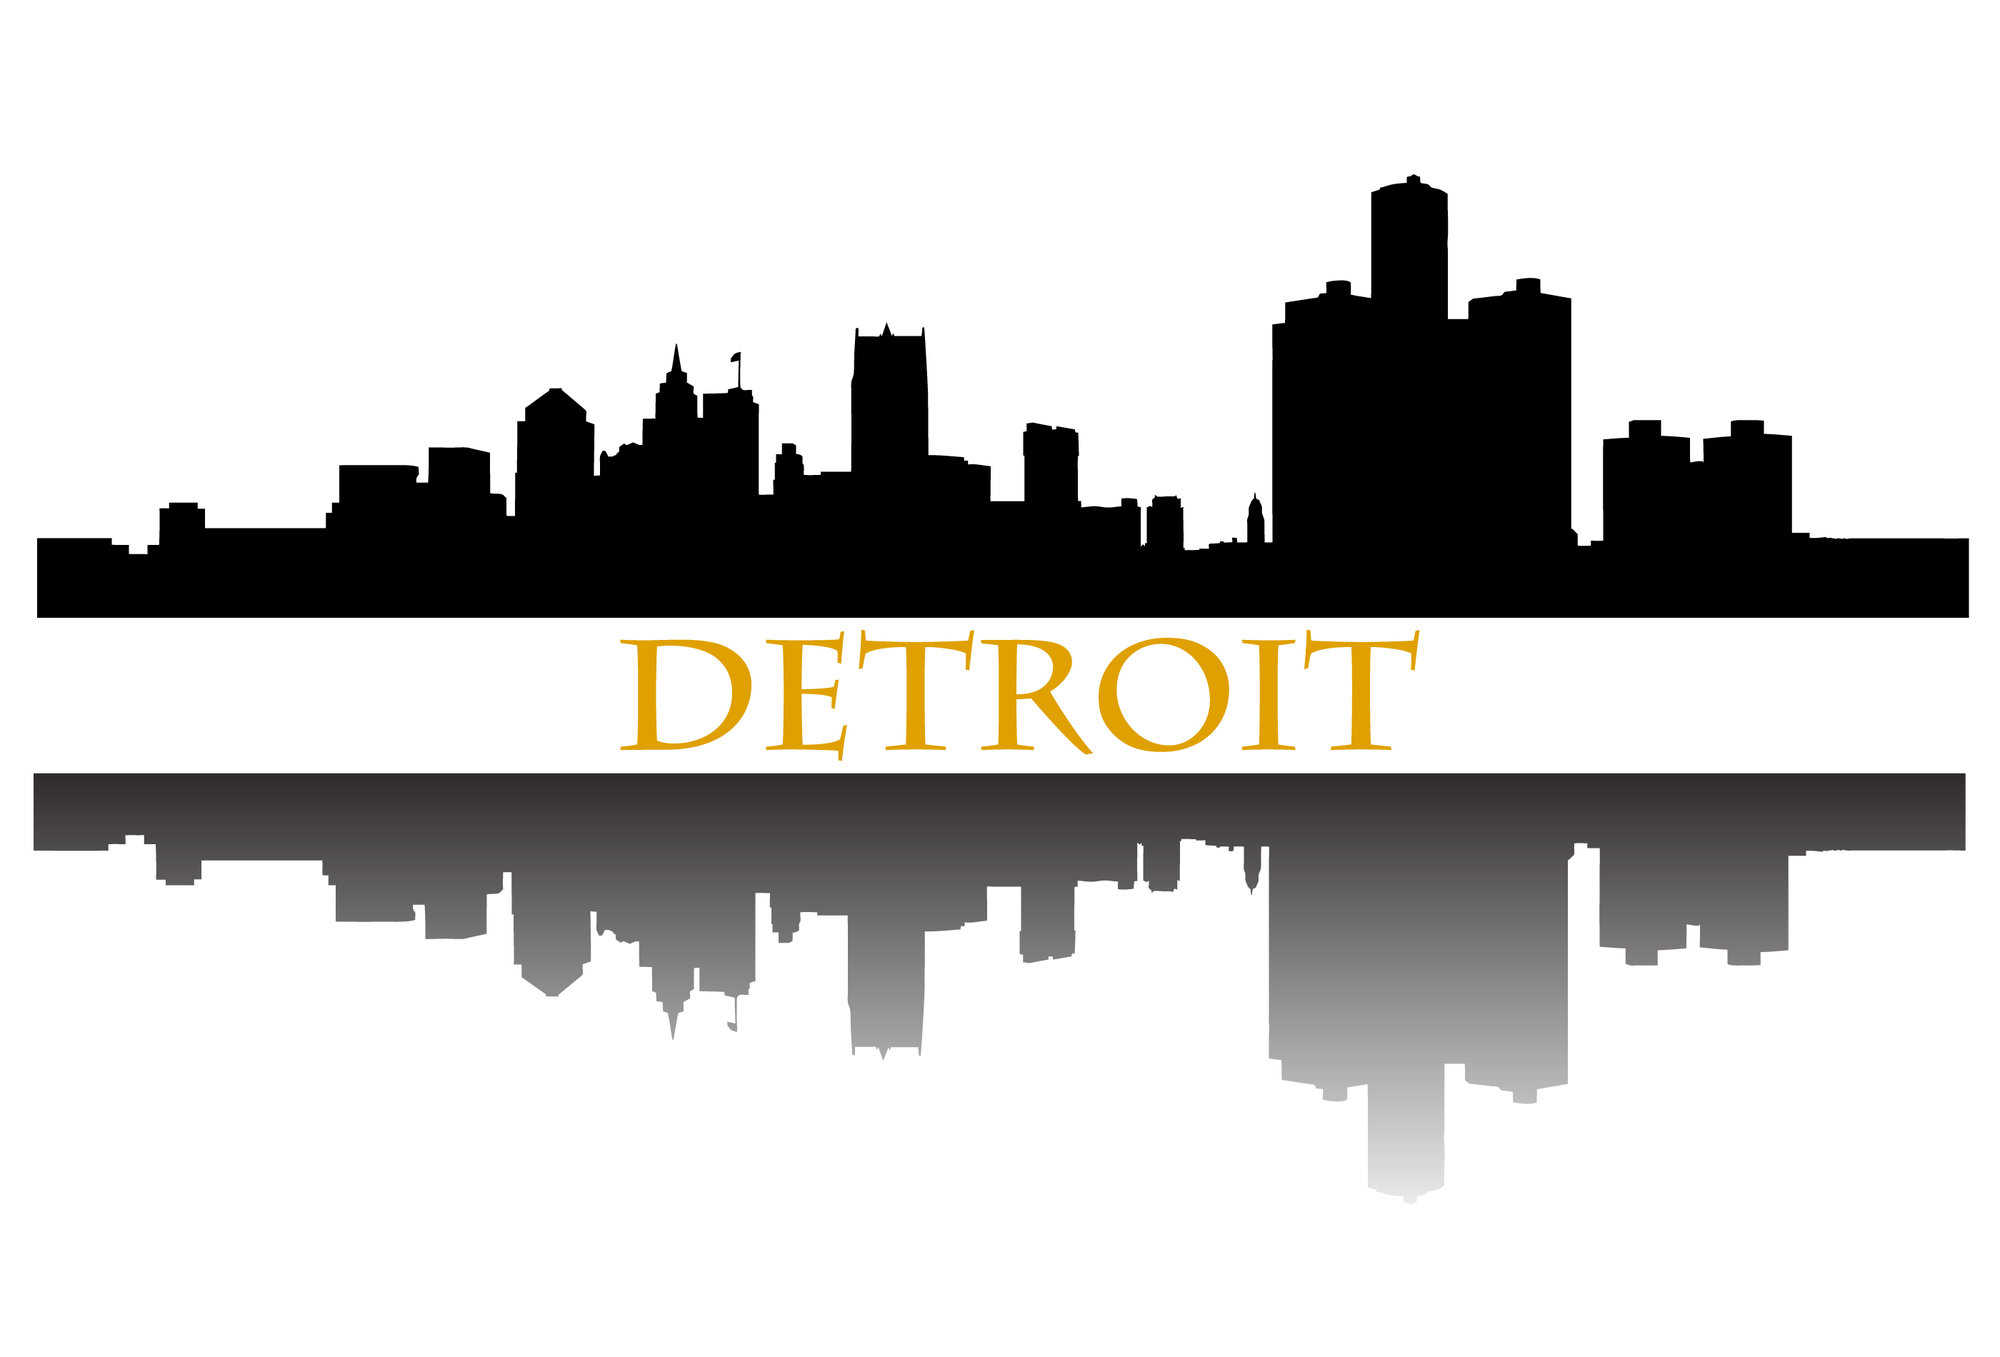 What Are Some Real Estate Investing Strategies That Work in the Detroit Market?